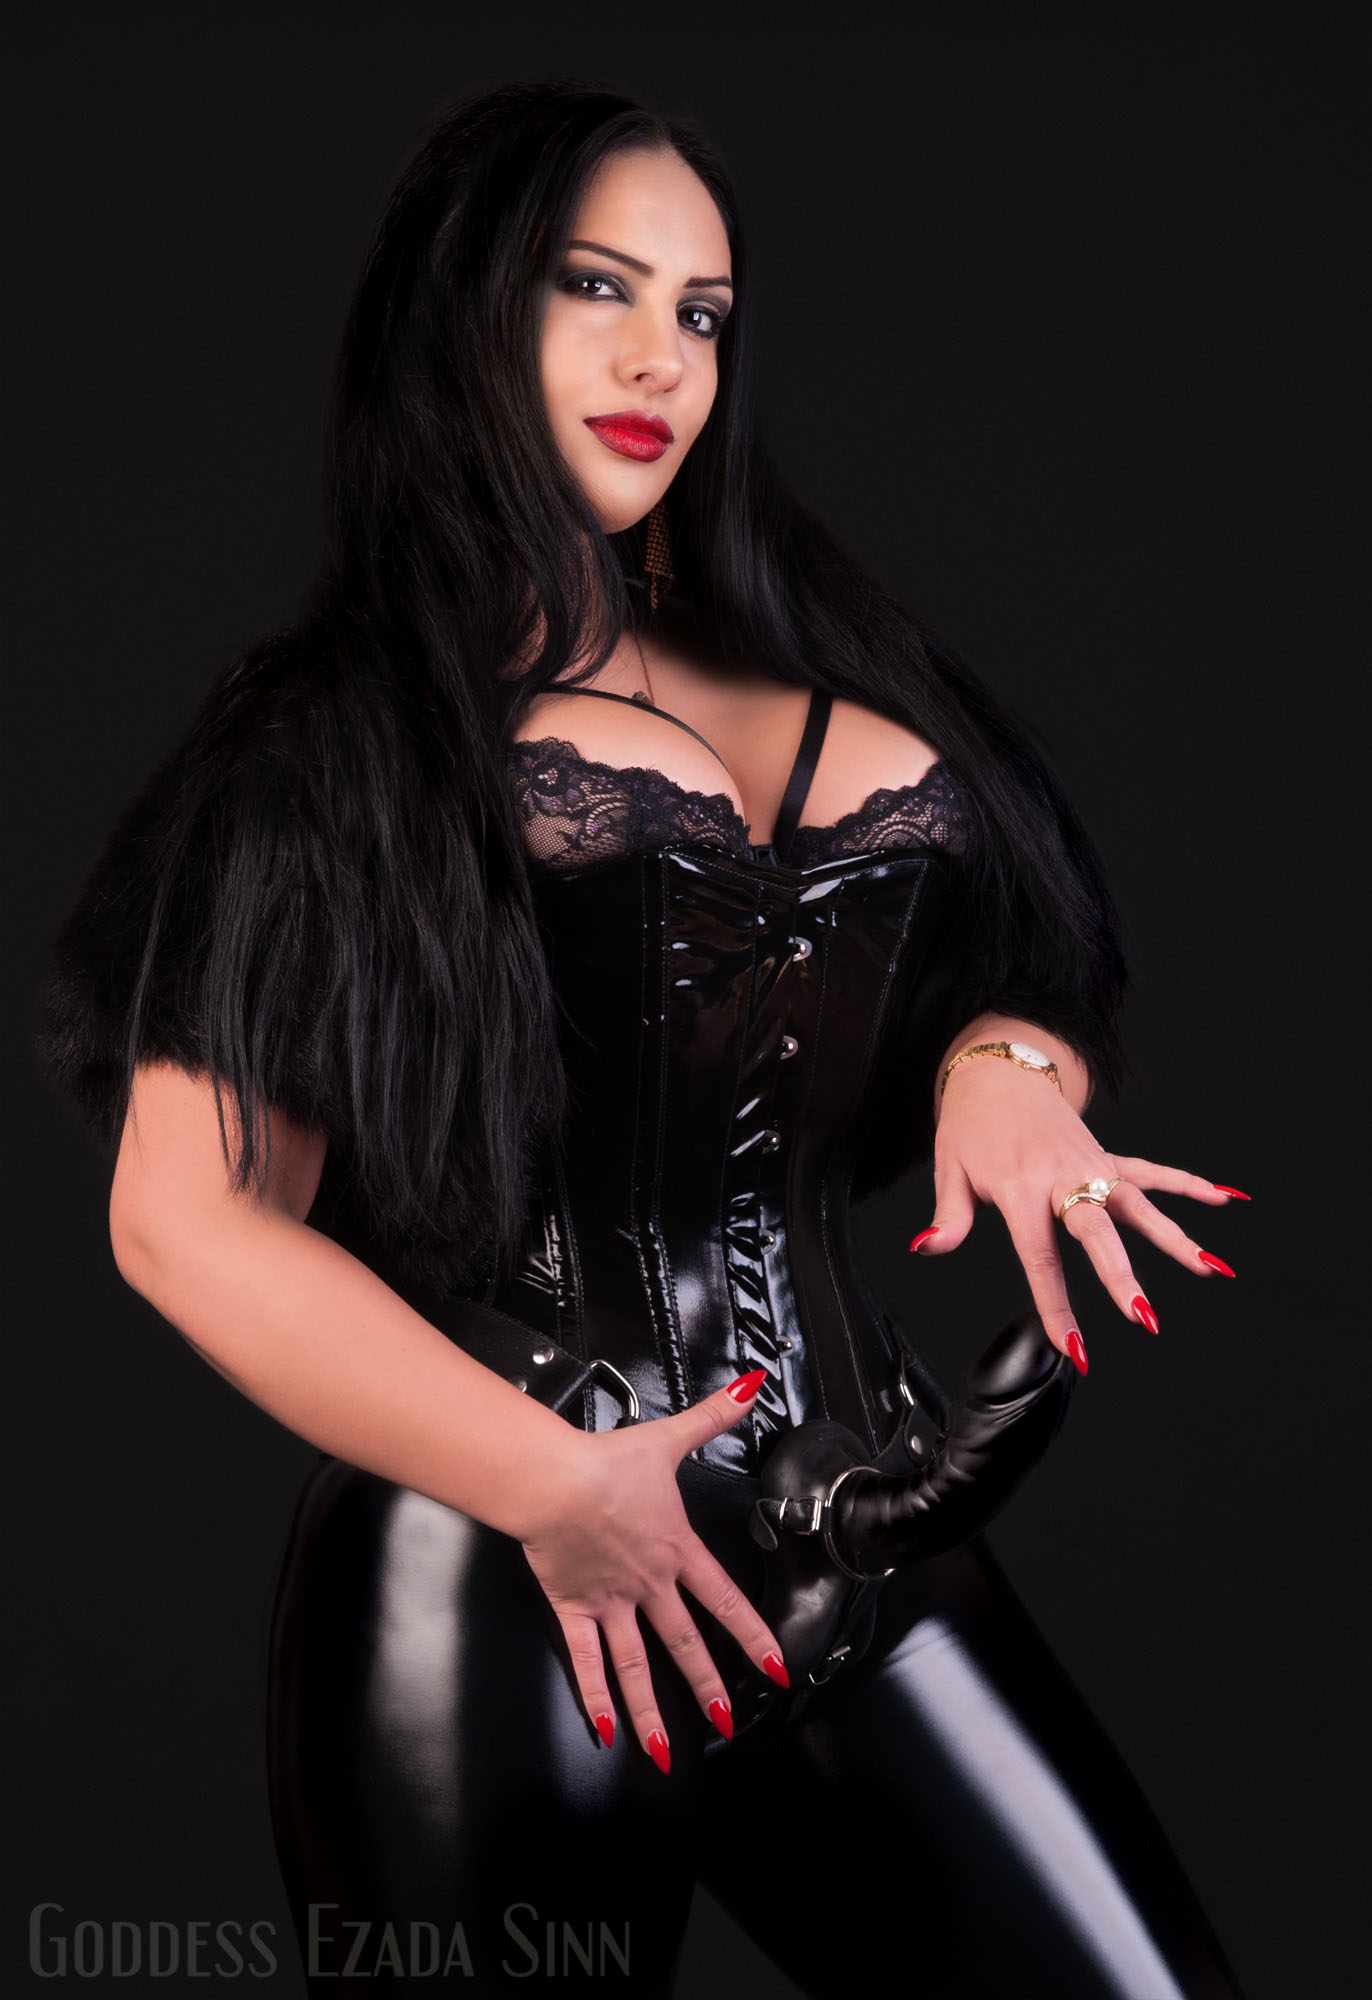 Ezada Sinn strap-on photo by Hans watermark